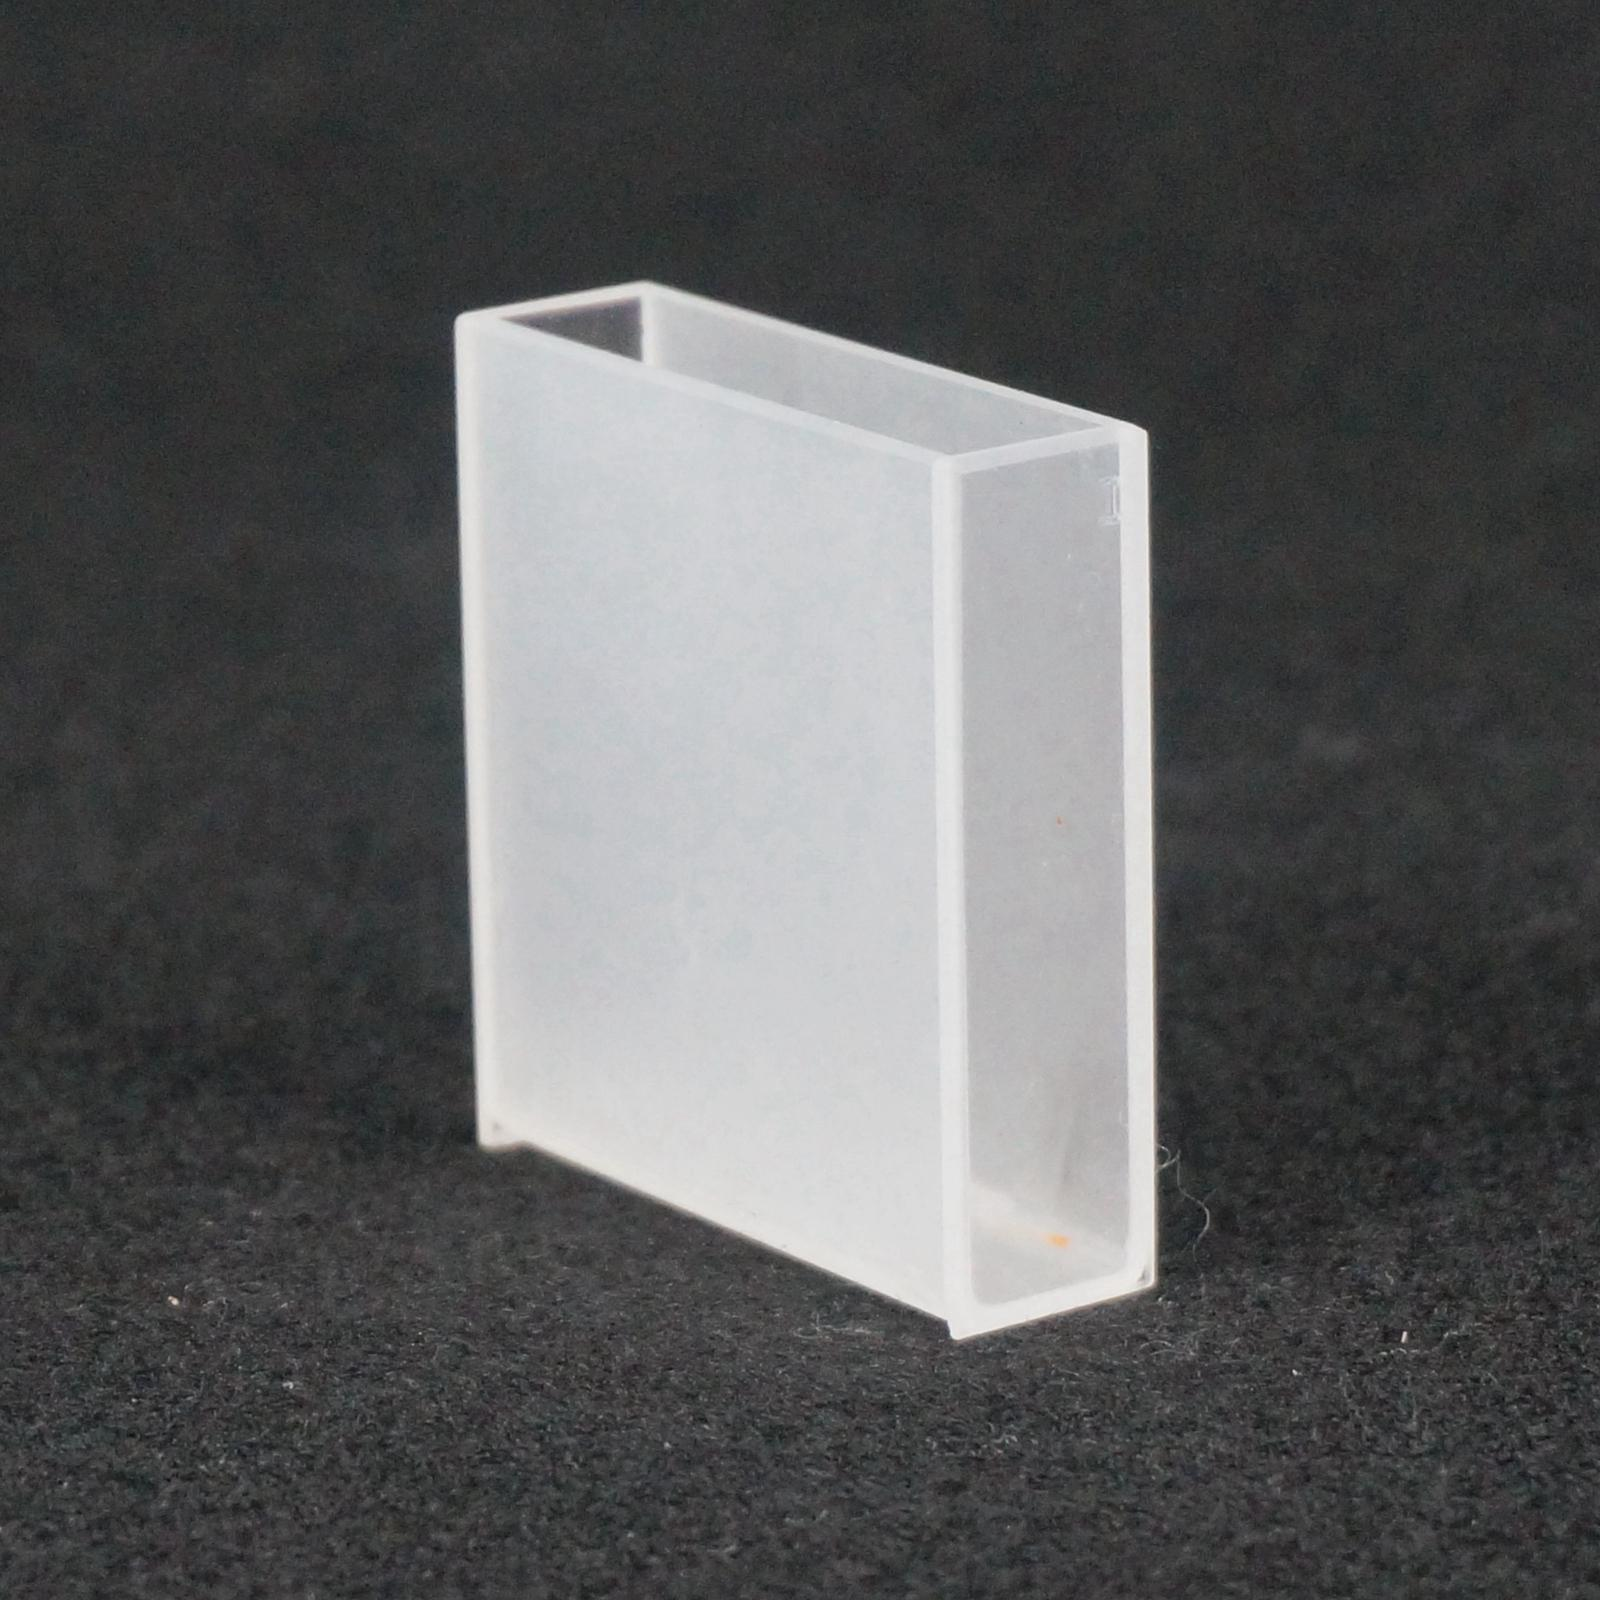 40mm Path Length Jgs-3 Quartz Cell Cuvette Cell With Telfon Lid For For Infrared Spectrometer